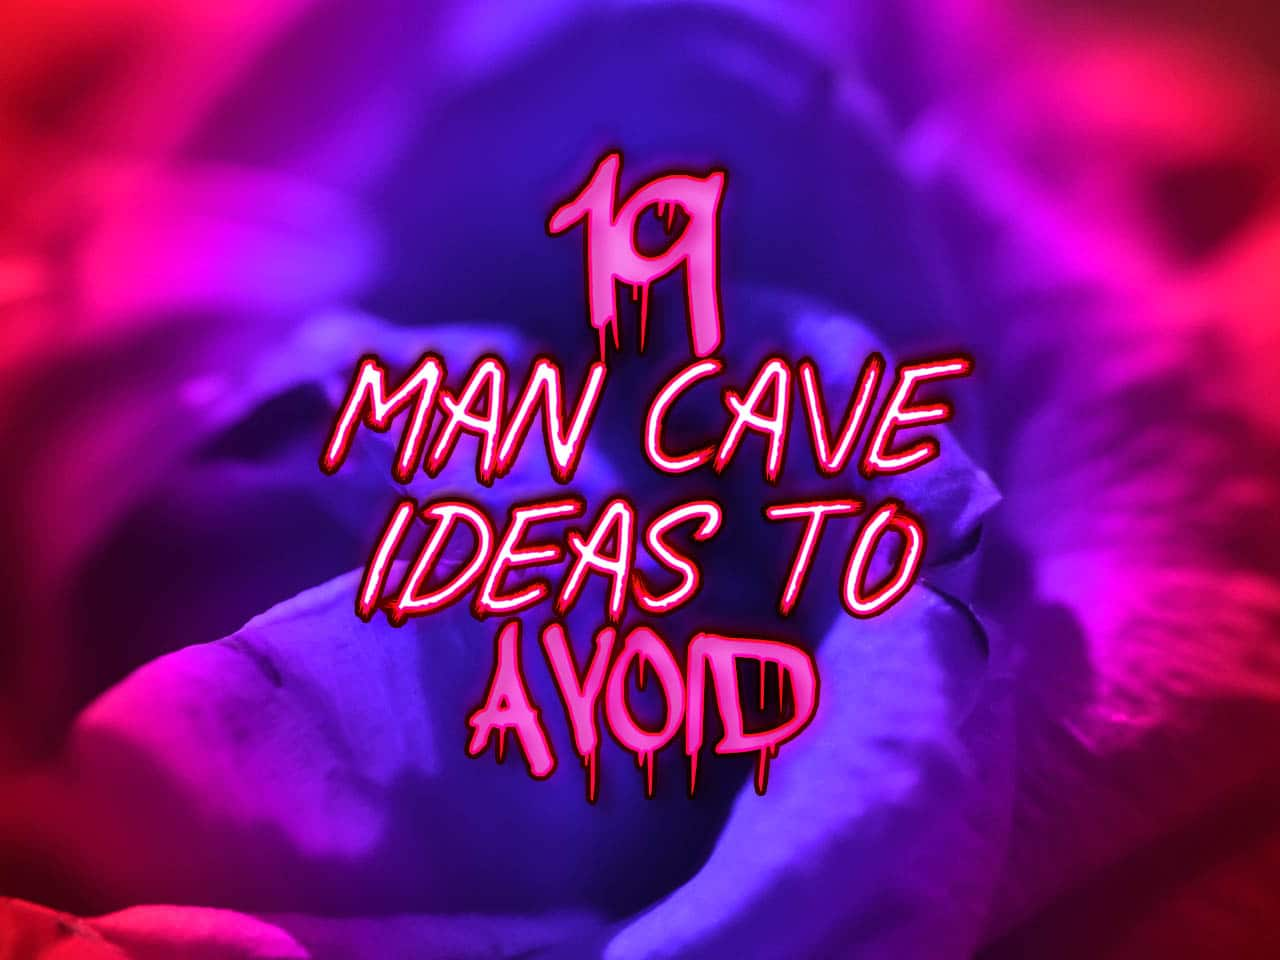 19 man cave ideas to avoid feature